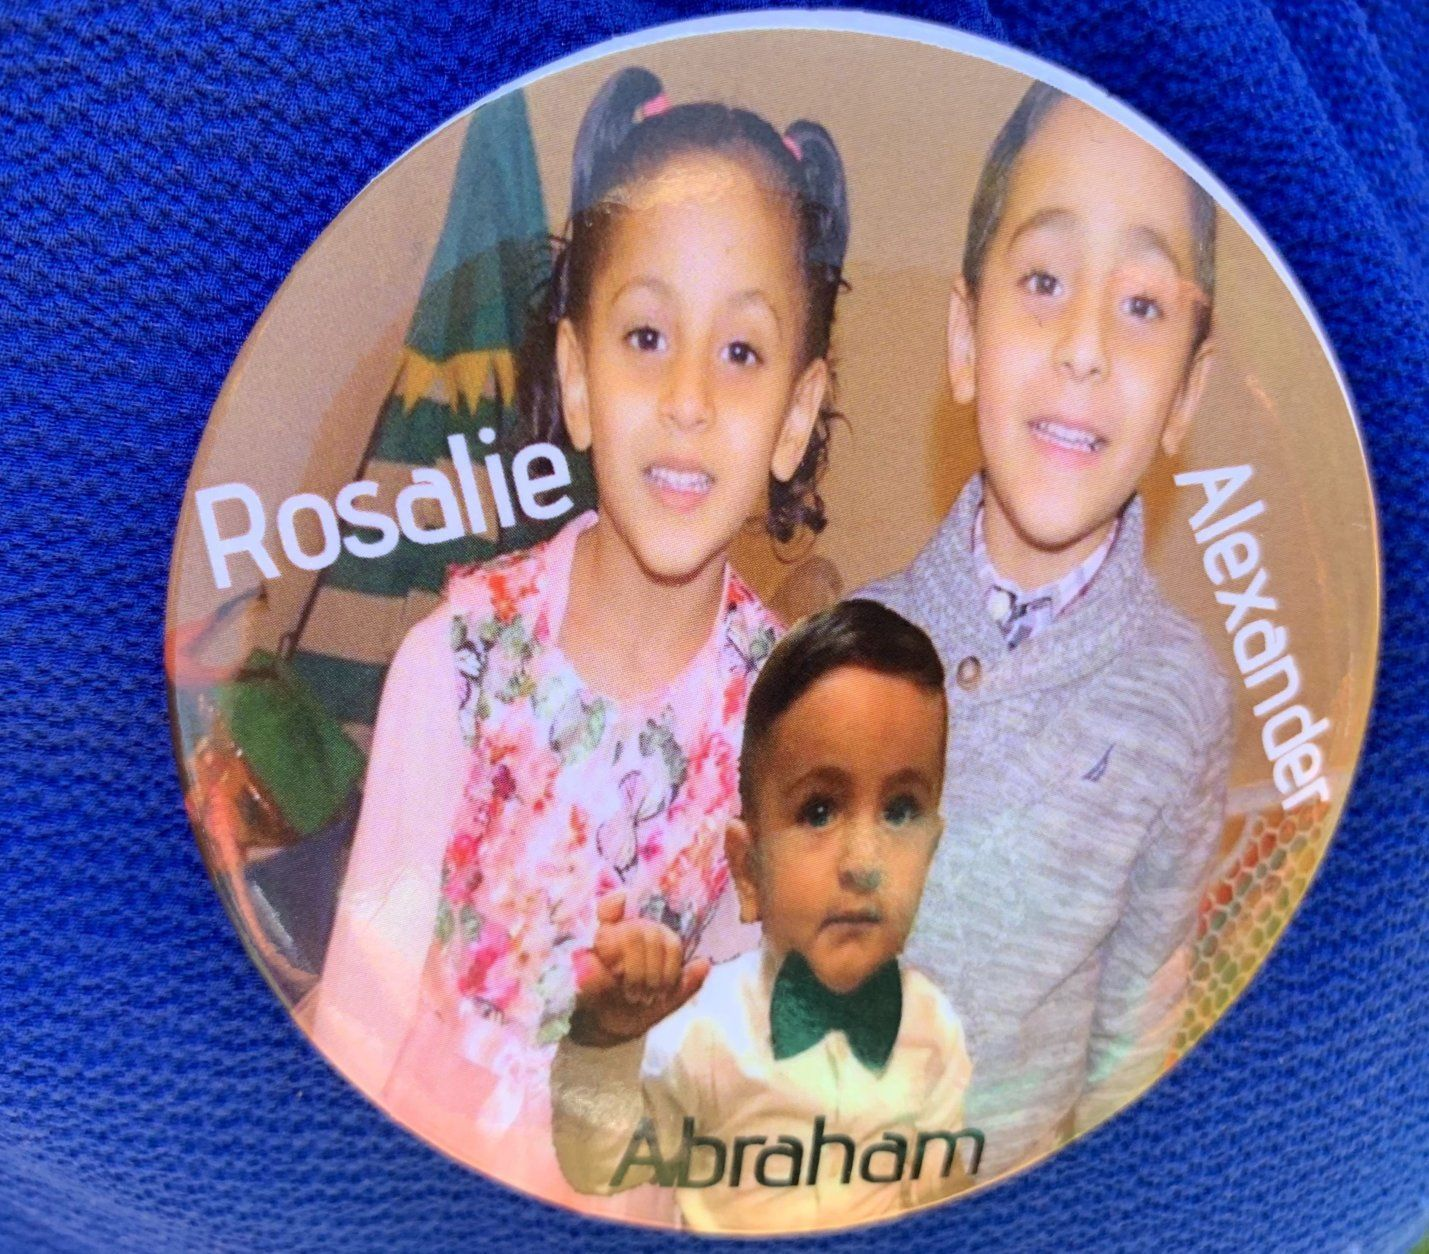 Dozens of family members and friends showed up to support the couple, many wearing buttons that had the names and faces of the three children. (WTOP/Mike Murillo)